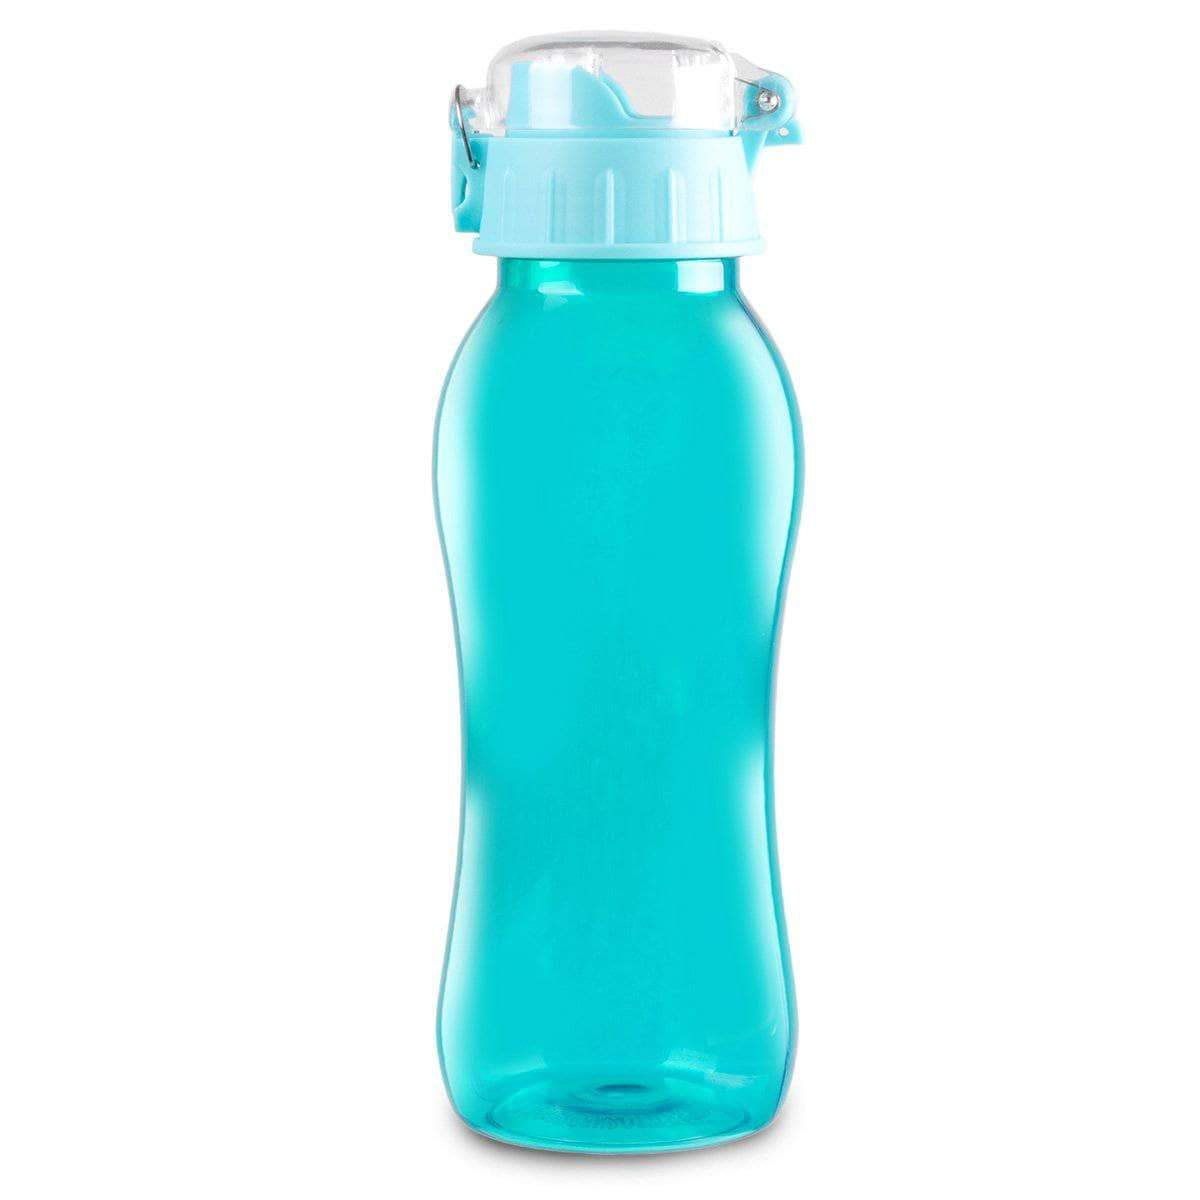 Geo Bottles Bottles Aqua 20oz BPA Free Sports Bottle With Wide Mouth Opening